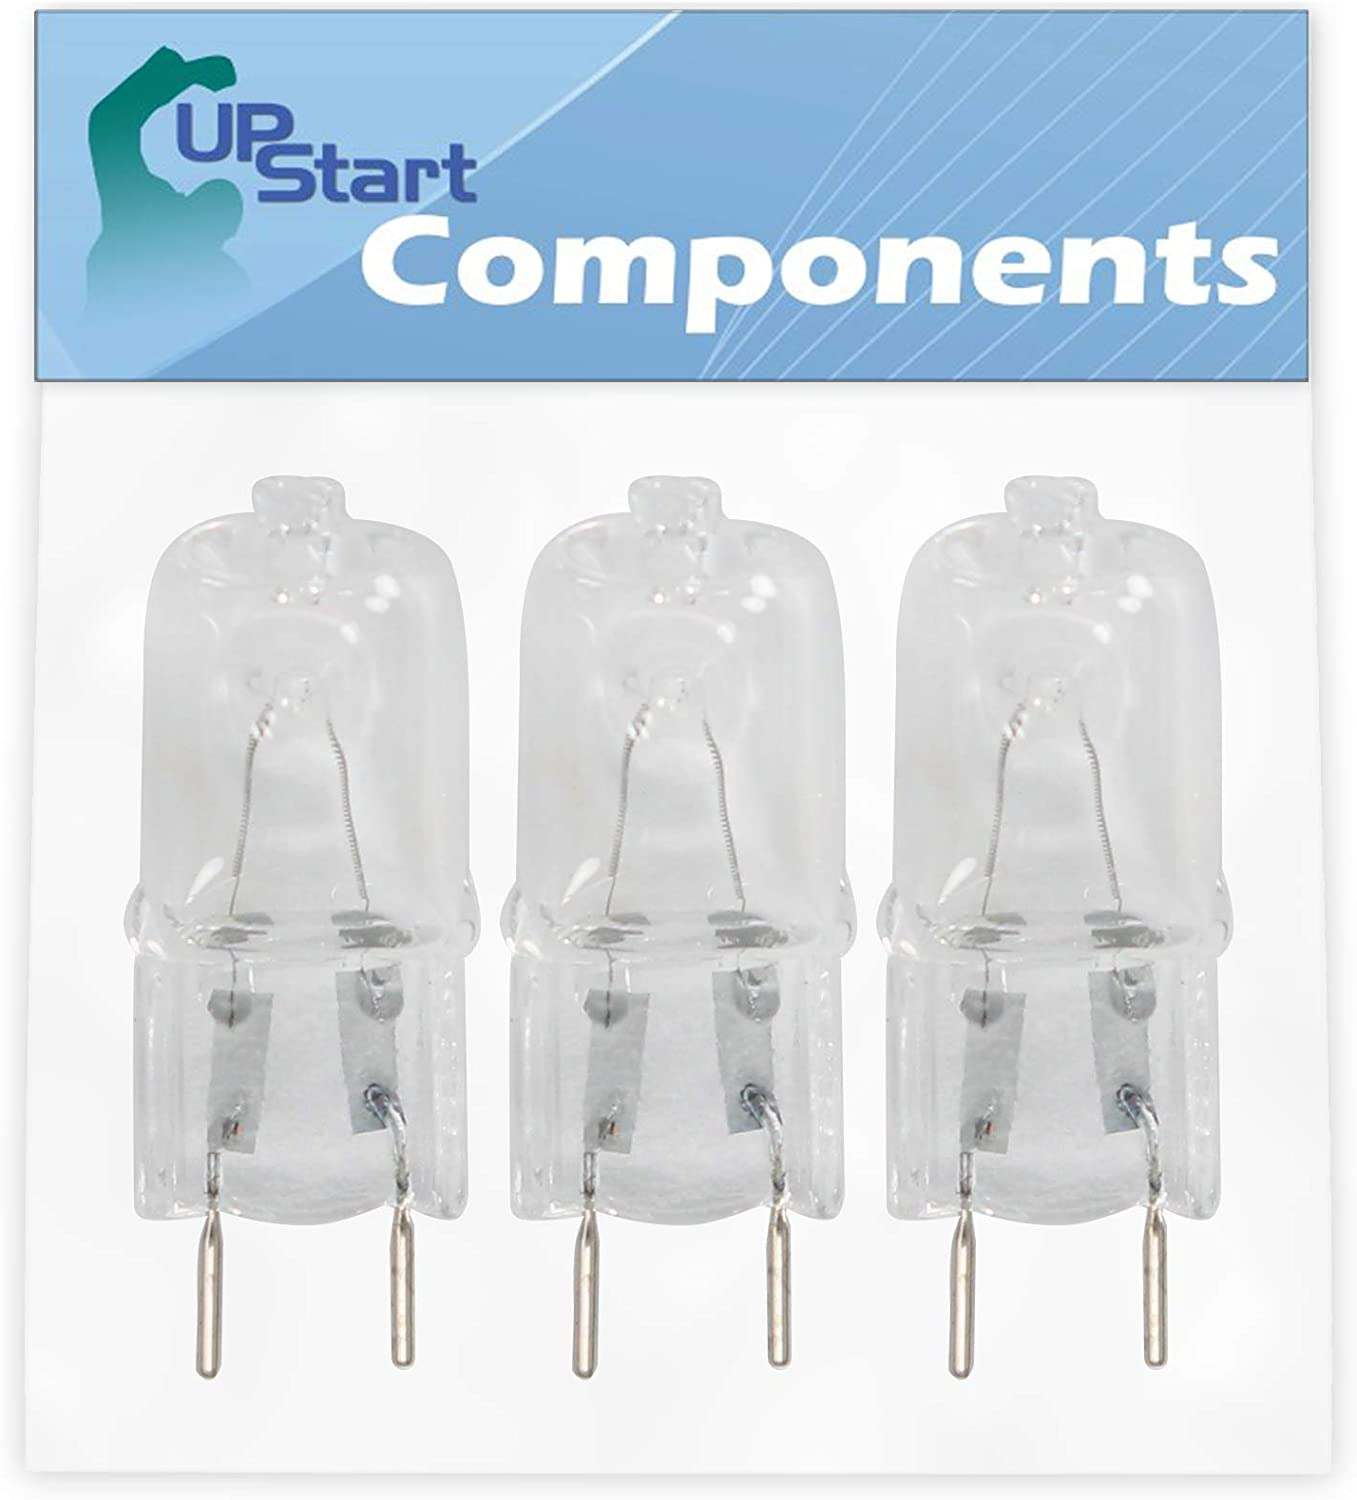 3-Pack 6912A40002E Microwave Oven Light Bulb Replacement for LG LMV2053ST (AS1ELGA) Microwave Oven - Compatible with LG 6912A40002E Bulb